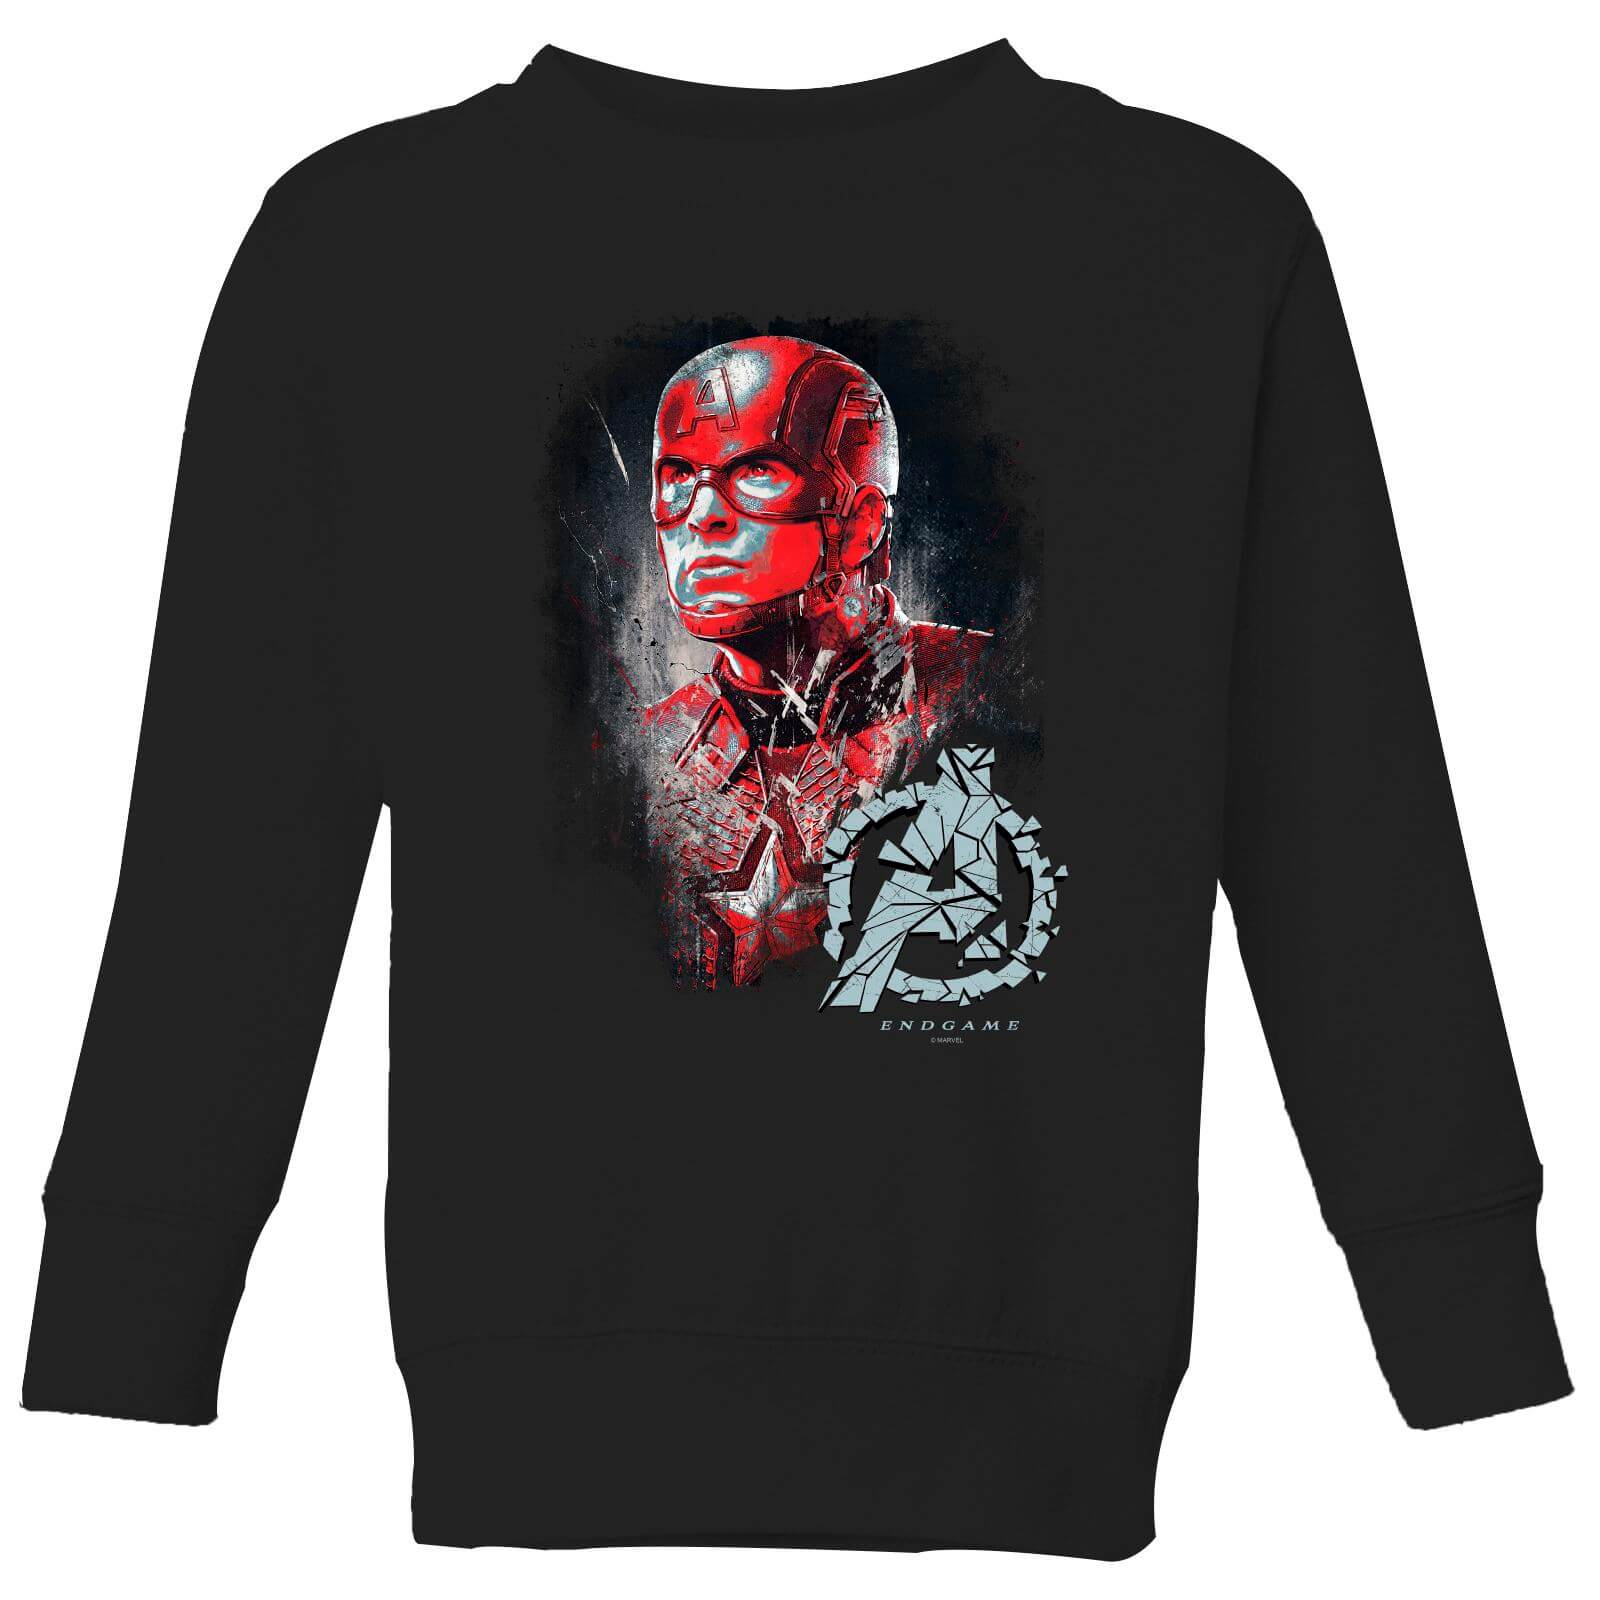 Avengers Endgame Captain America Brushed Kids' Sweatshirt - Black - 5-6 Years - Black